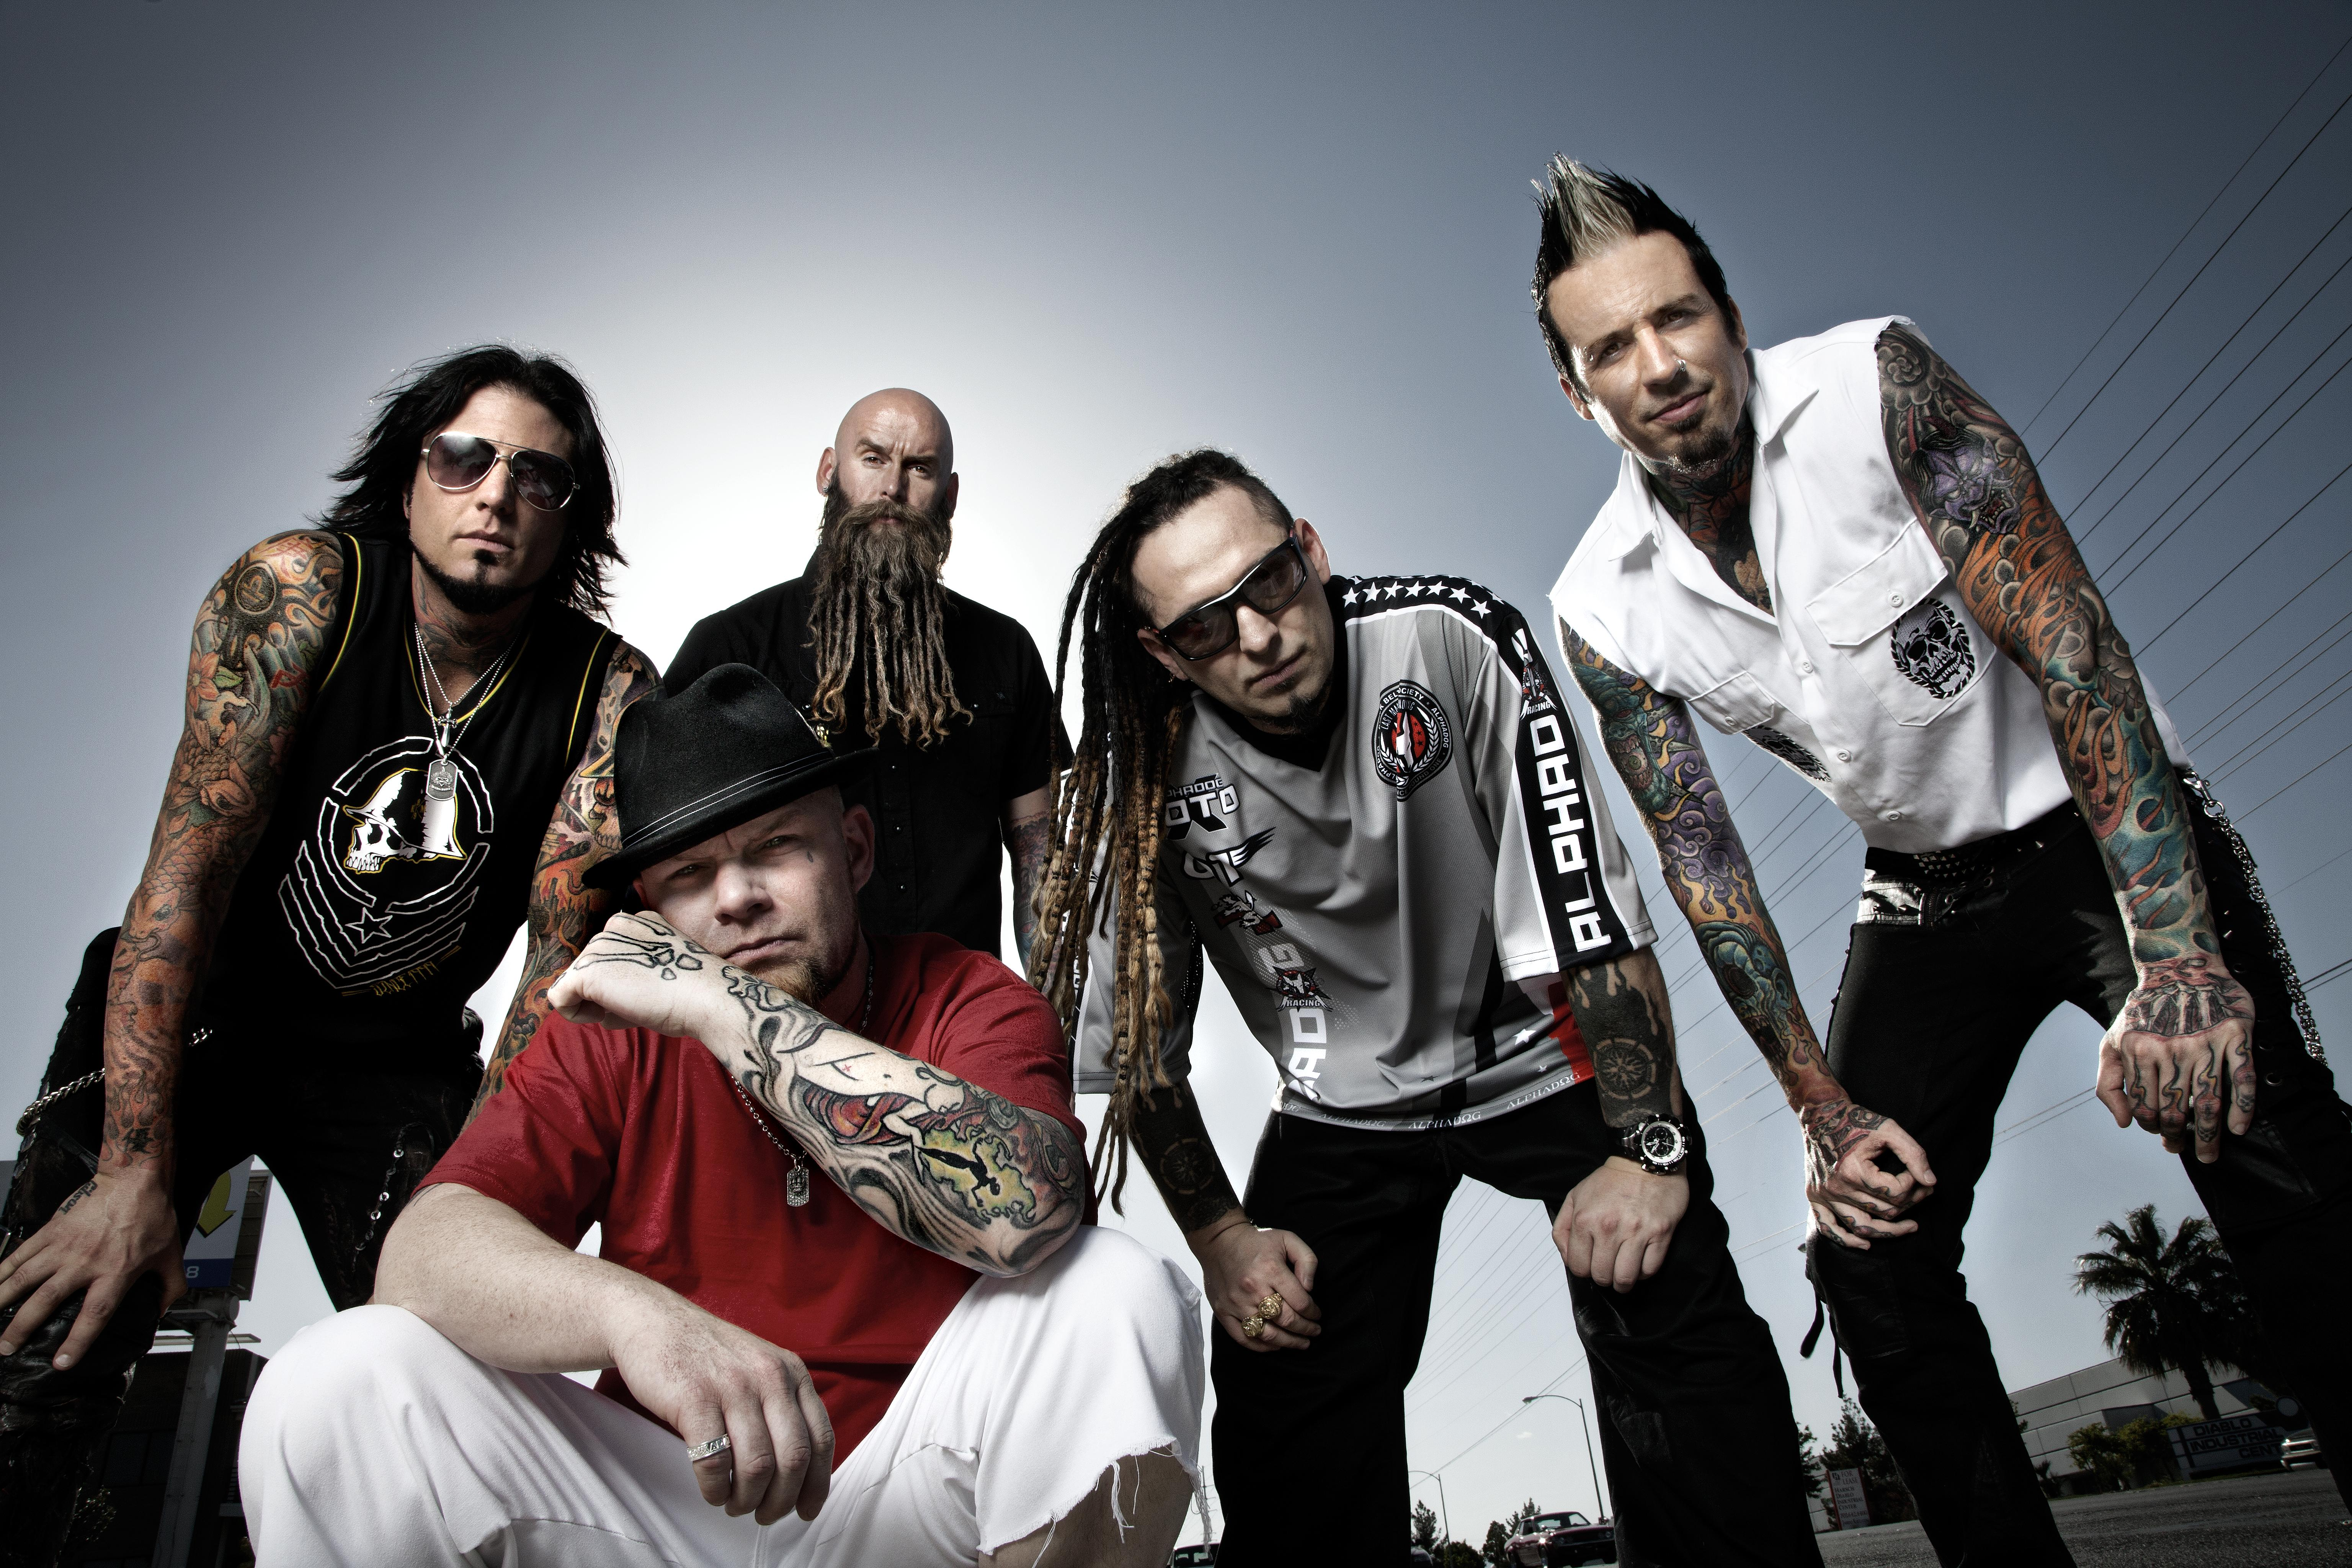 With 6 Golden God nominations and finishing an arena tour, FFDP are back.